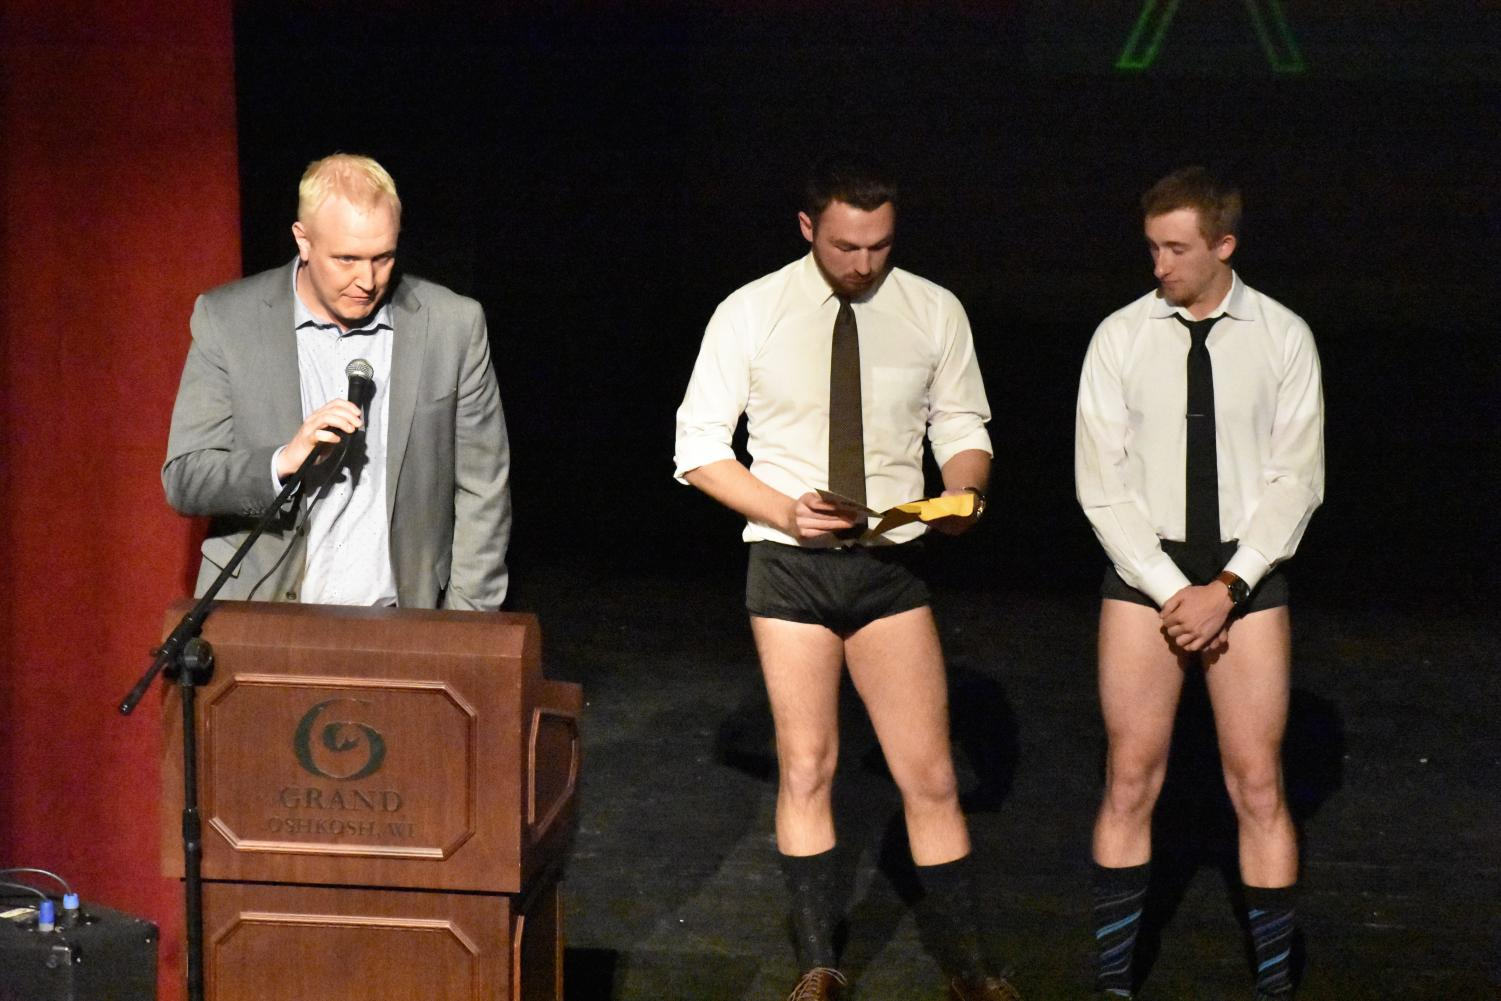 Women's basketball coach Brad Fischer stands on stage alongside two UWO swimmers displaying out-of-the-pool attire on Monday.